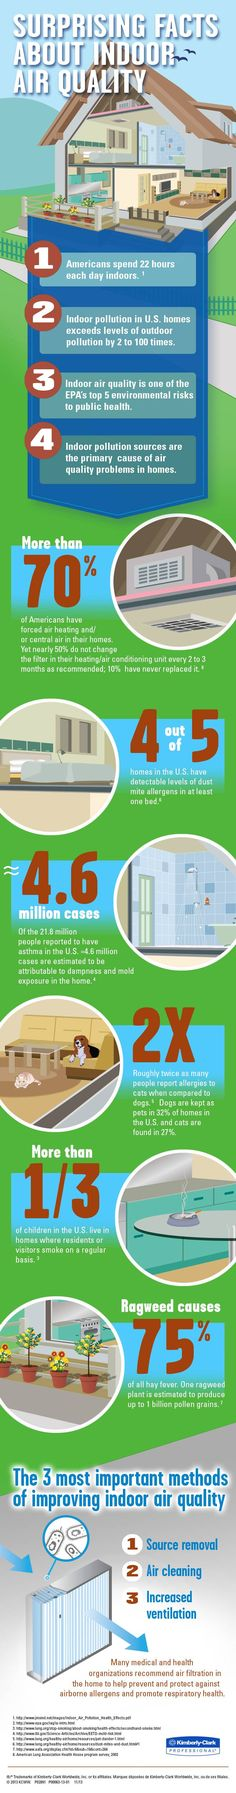 Surprising Facts about Indoor Air Quality (infographic) Contact your local contractor to inquire about having an indoor air quality analysis performed. Natural Air Purifier, Clean Air Ducts, Duct Cleaning, Heating And Air Conditioning, Air Plants, Plants Indoor, Air Pollution, Home Schooling, Indoor Air Quality